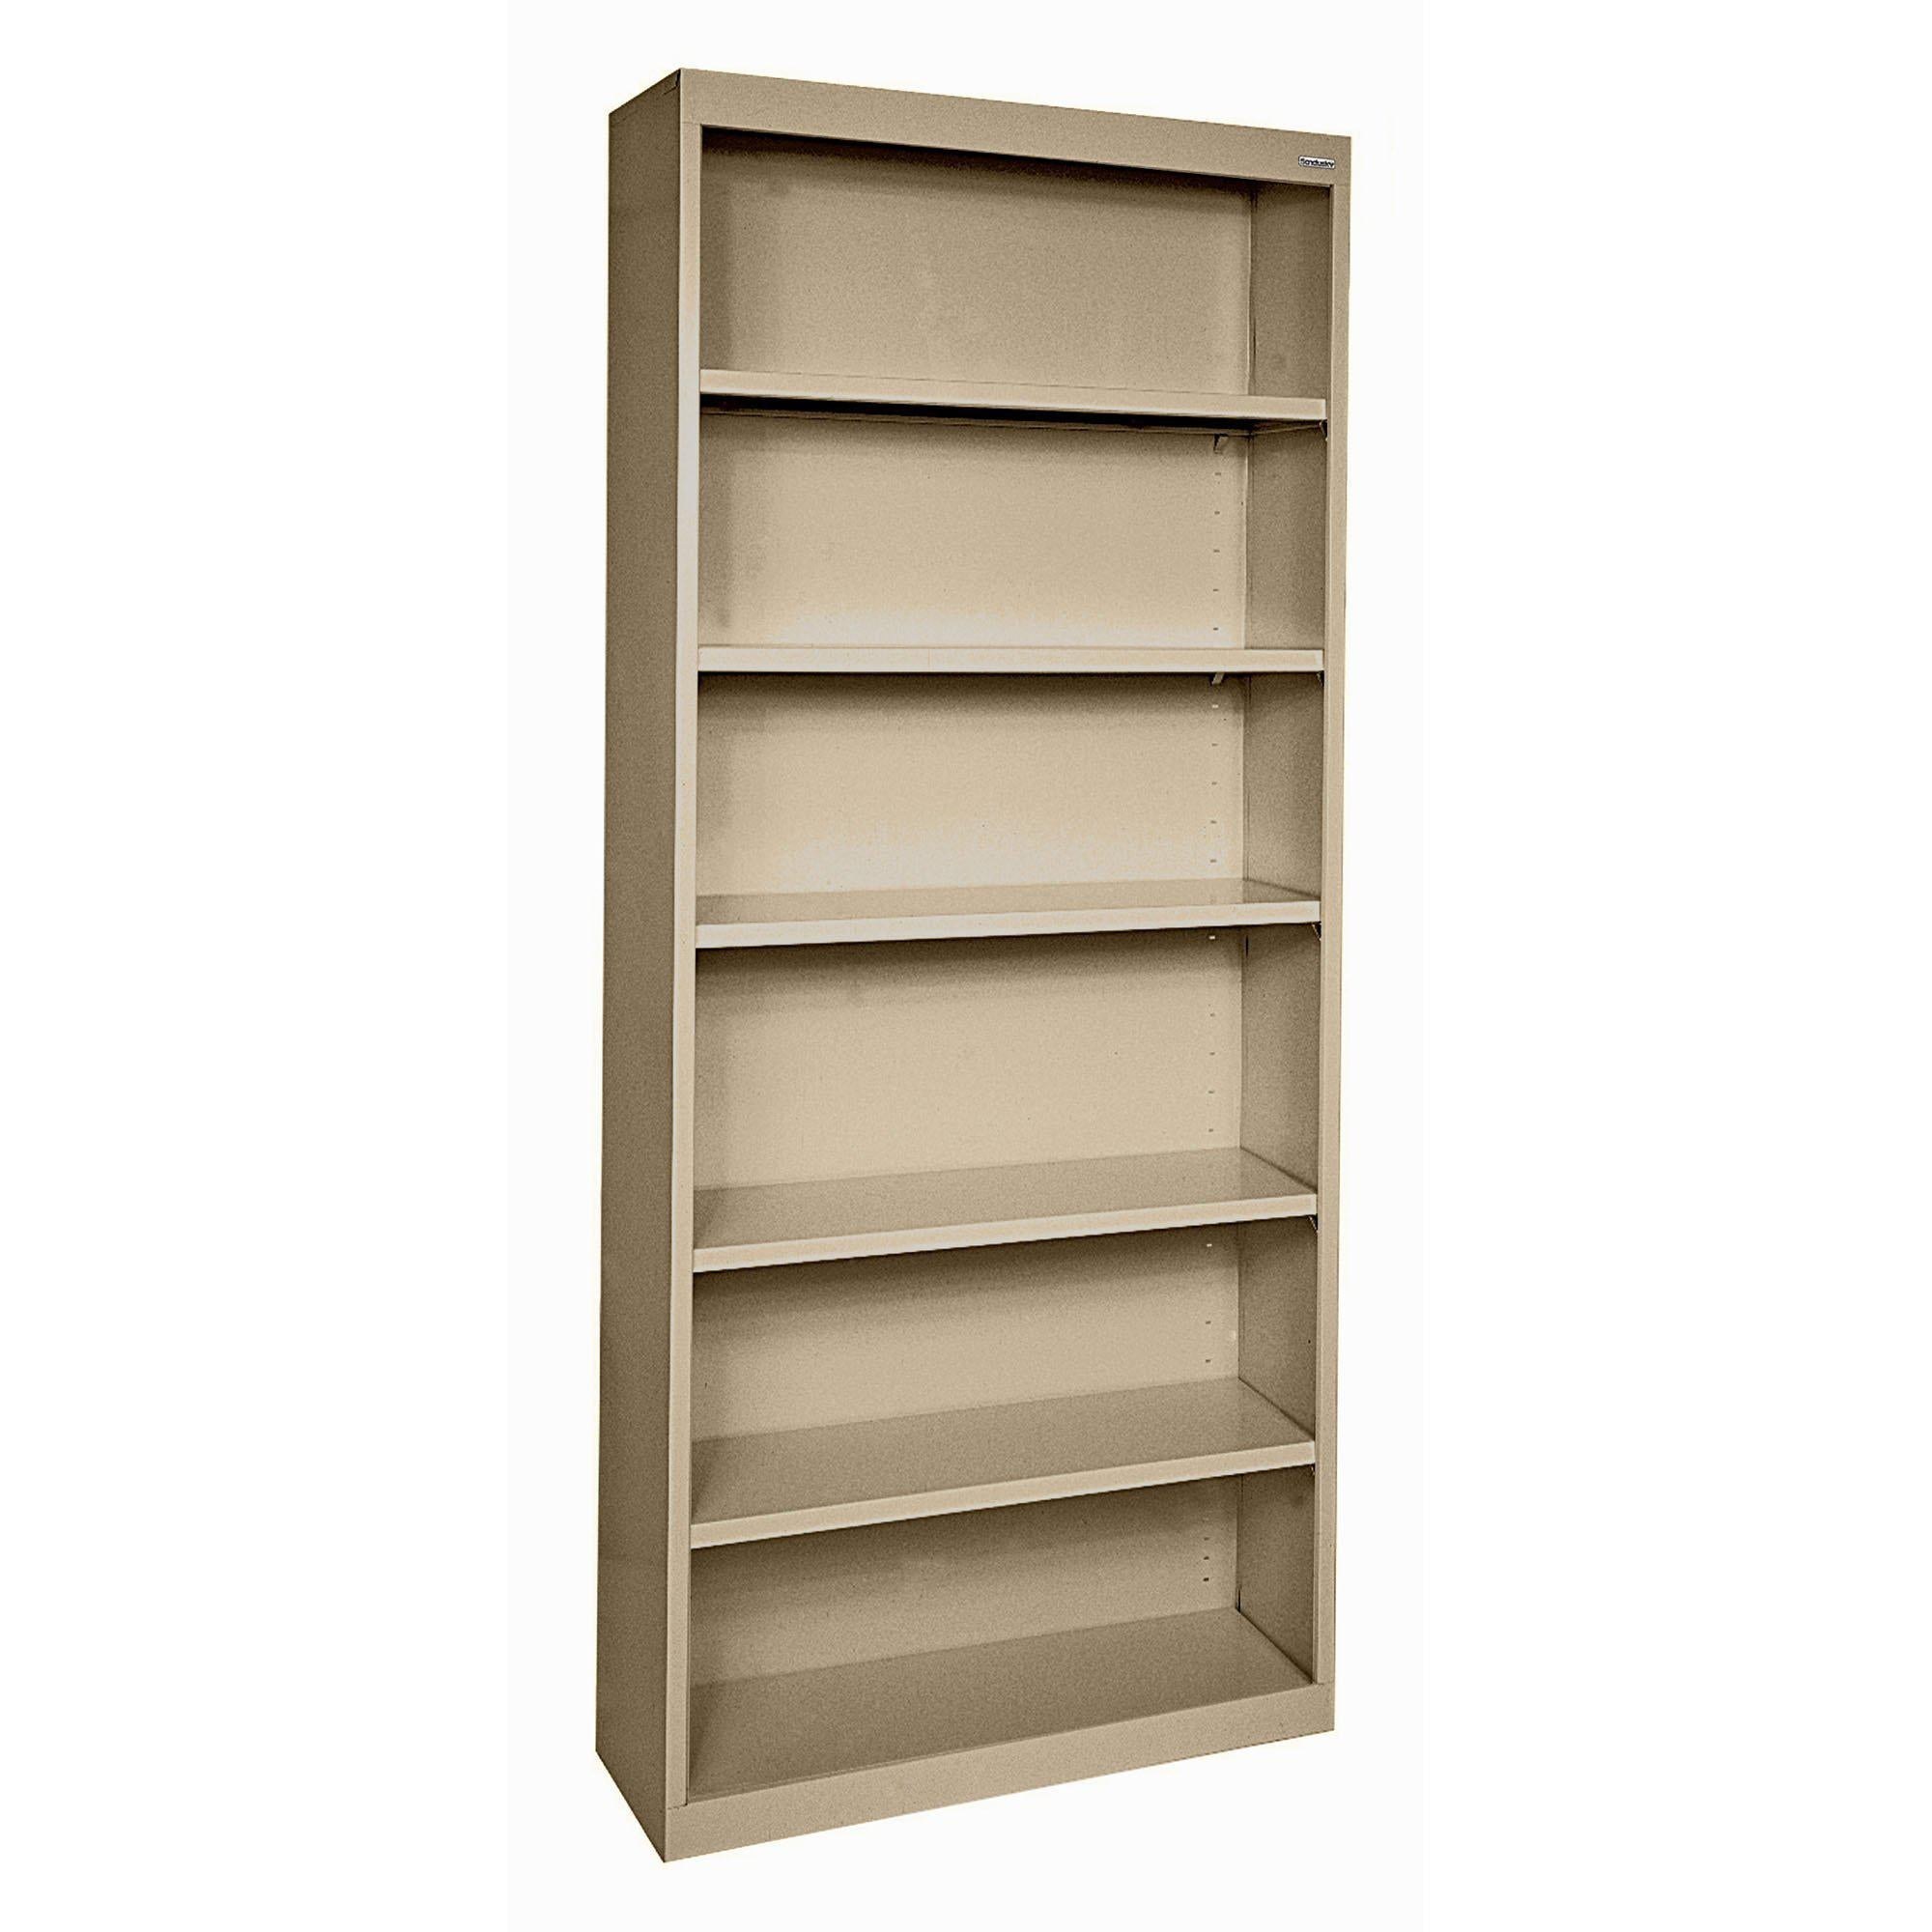 Elite Series Welded Steel Bookcase, 5 Shelves and Bottom Shelf, 36 x 18 x 84, Tropic Sand